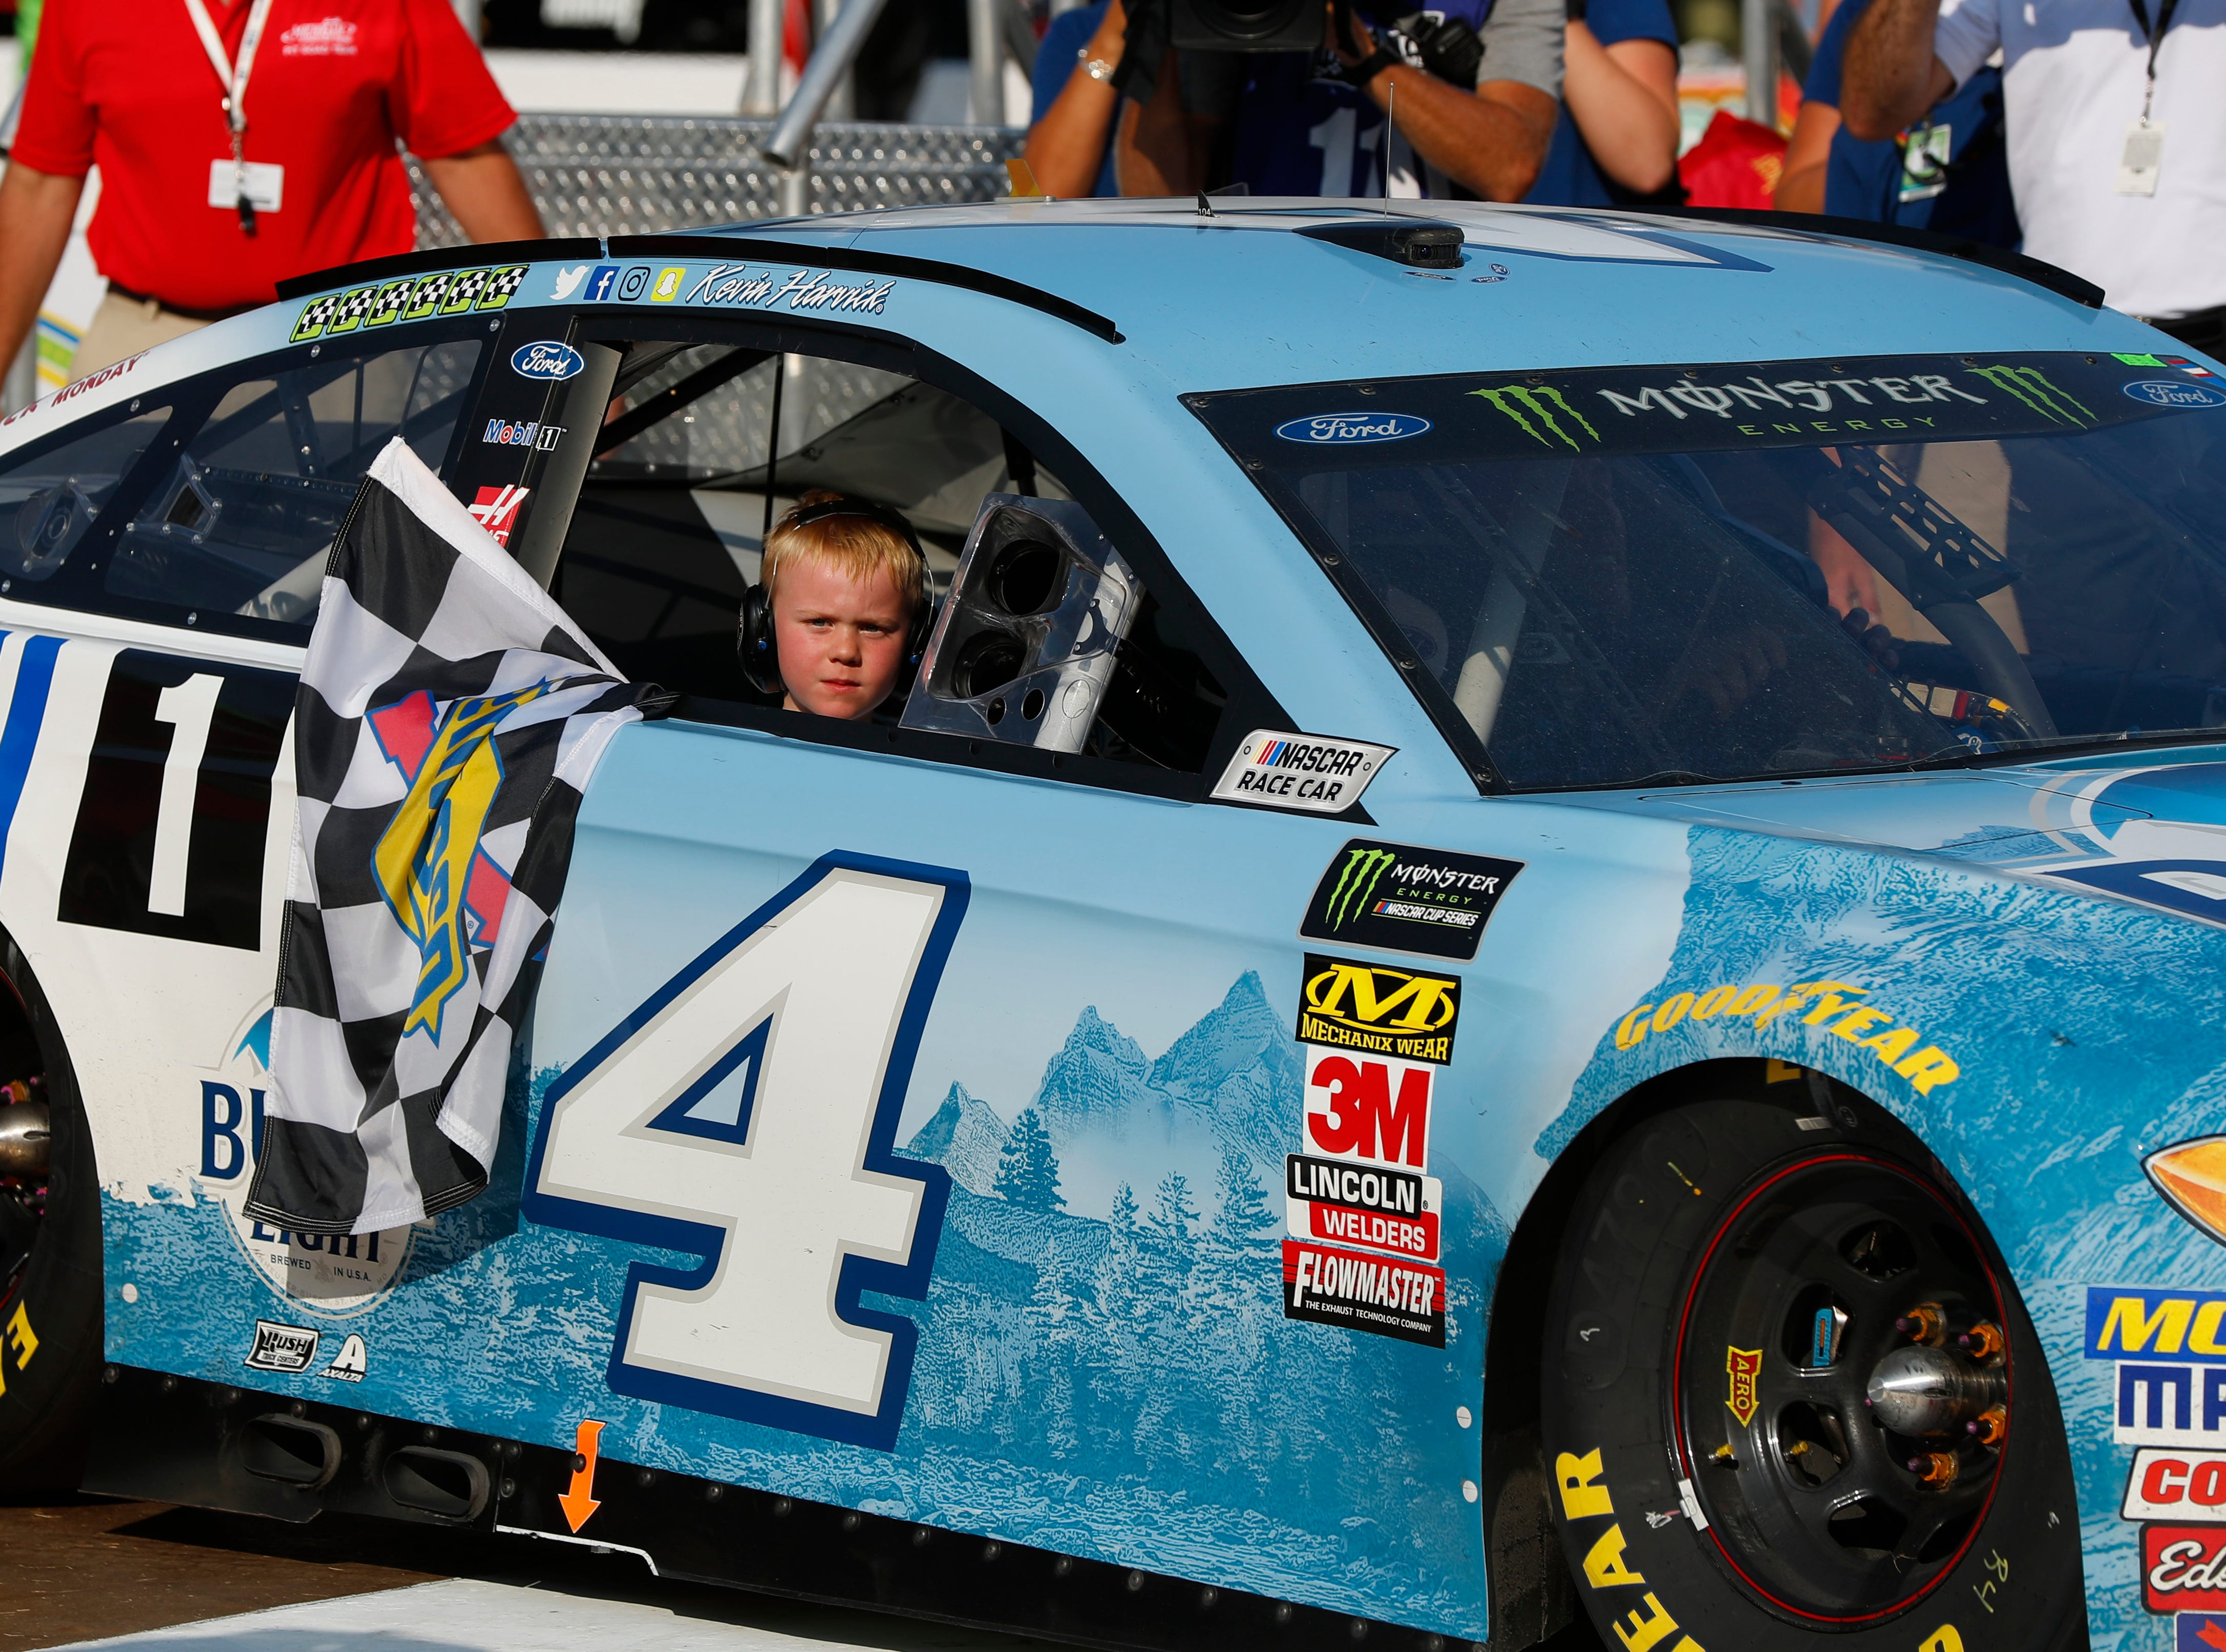 Kevin Harvick's son, Keelan, rides into Winner's Circle with his father after a NASCAR Cup Series auto race at Michigan International Speedway in Brooklyn, Mich., Sunday, Aug. 12, 2018.